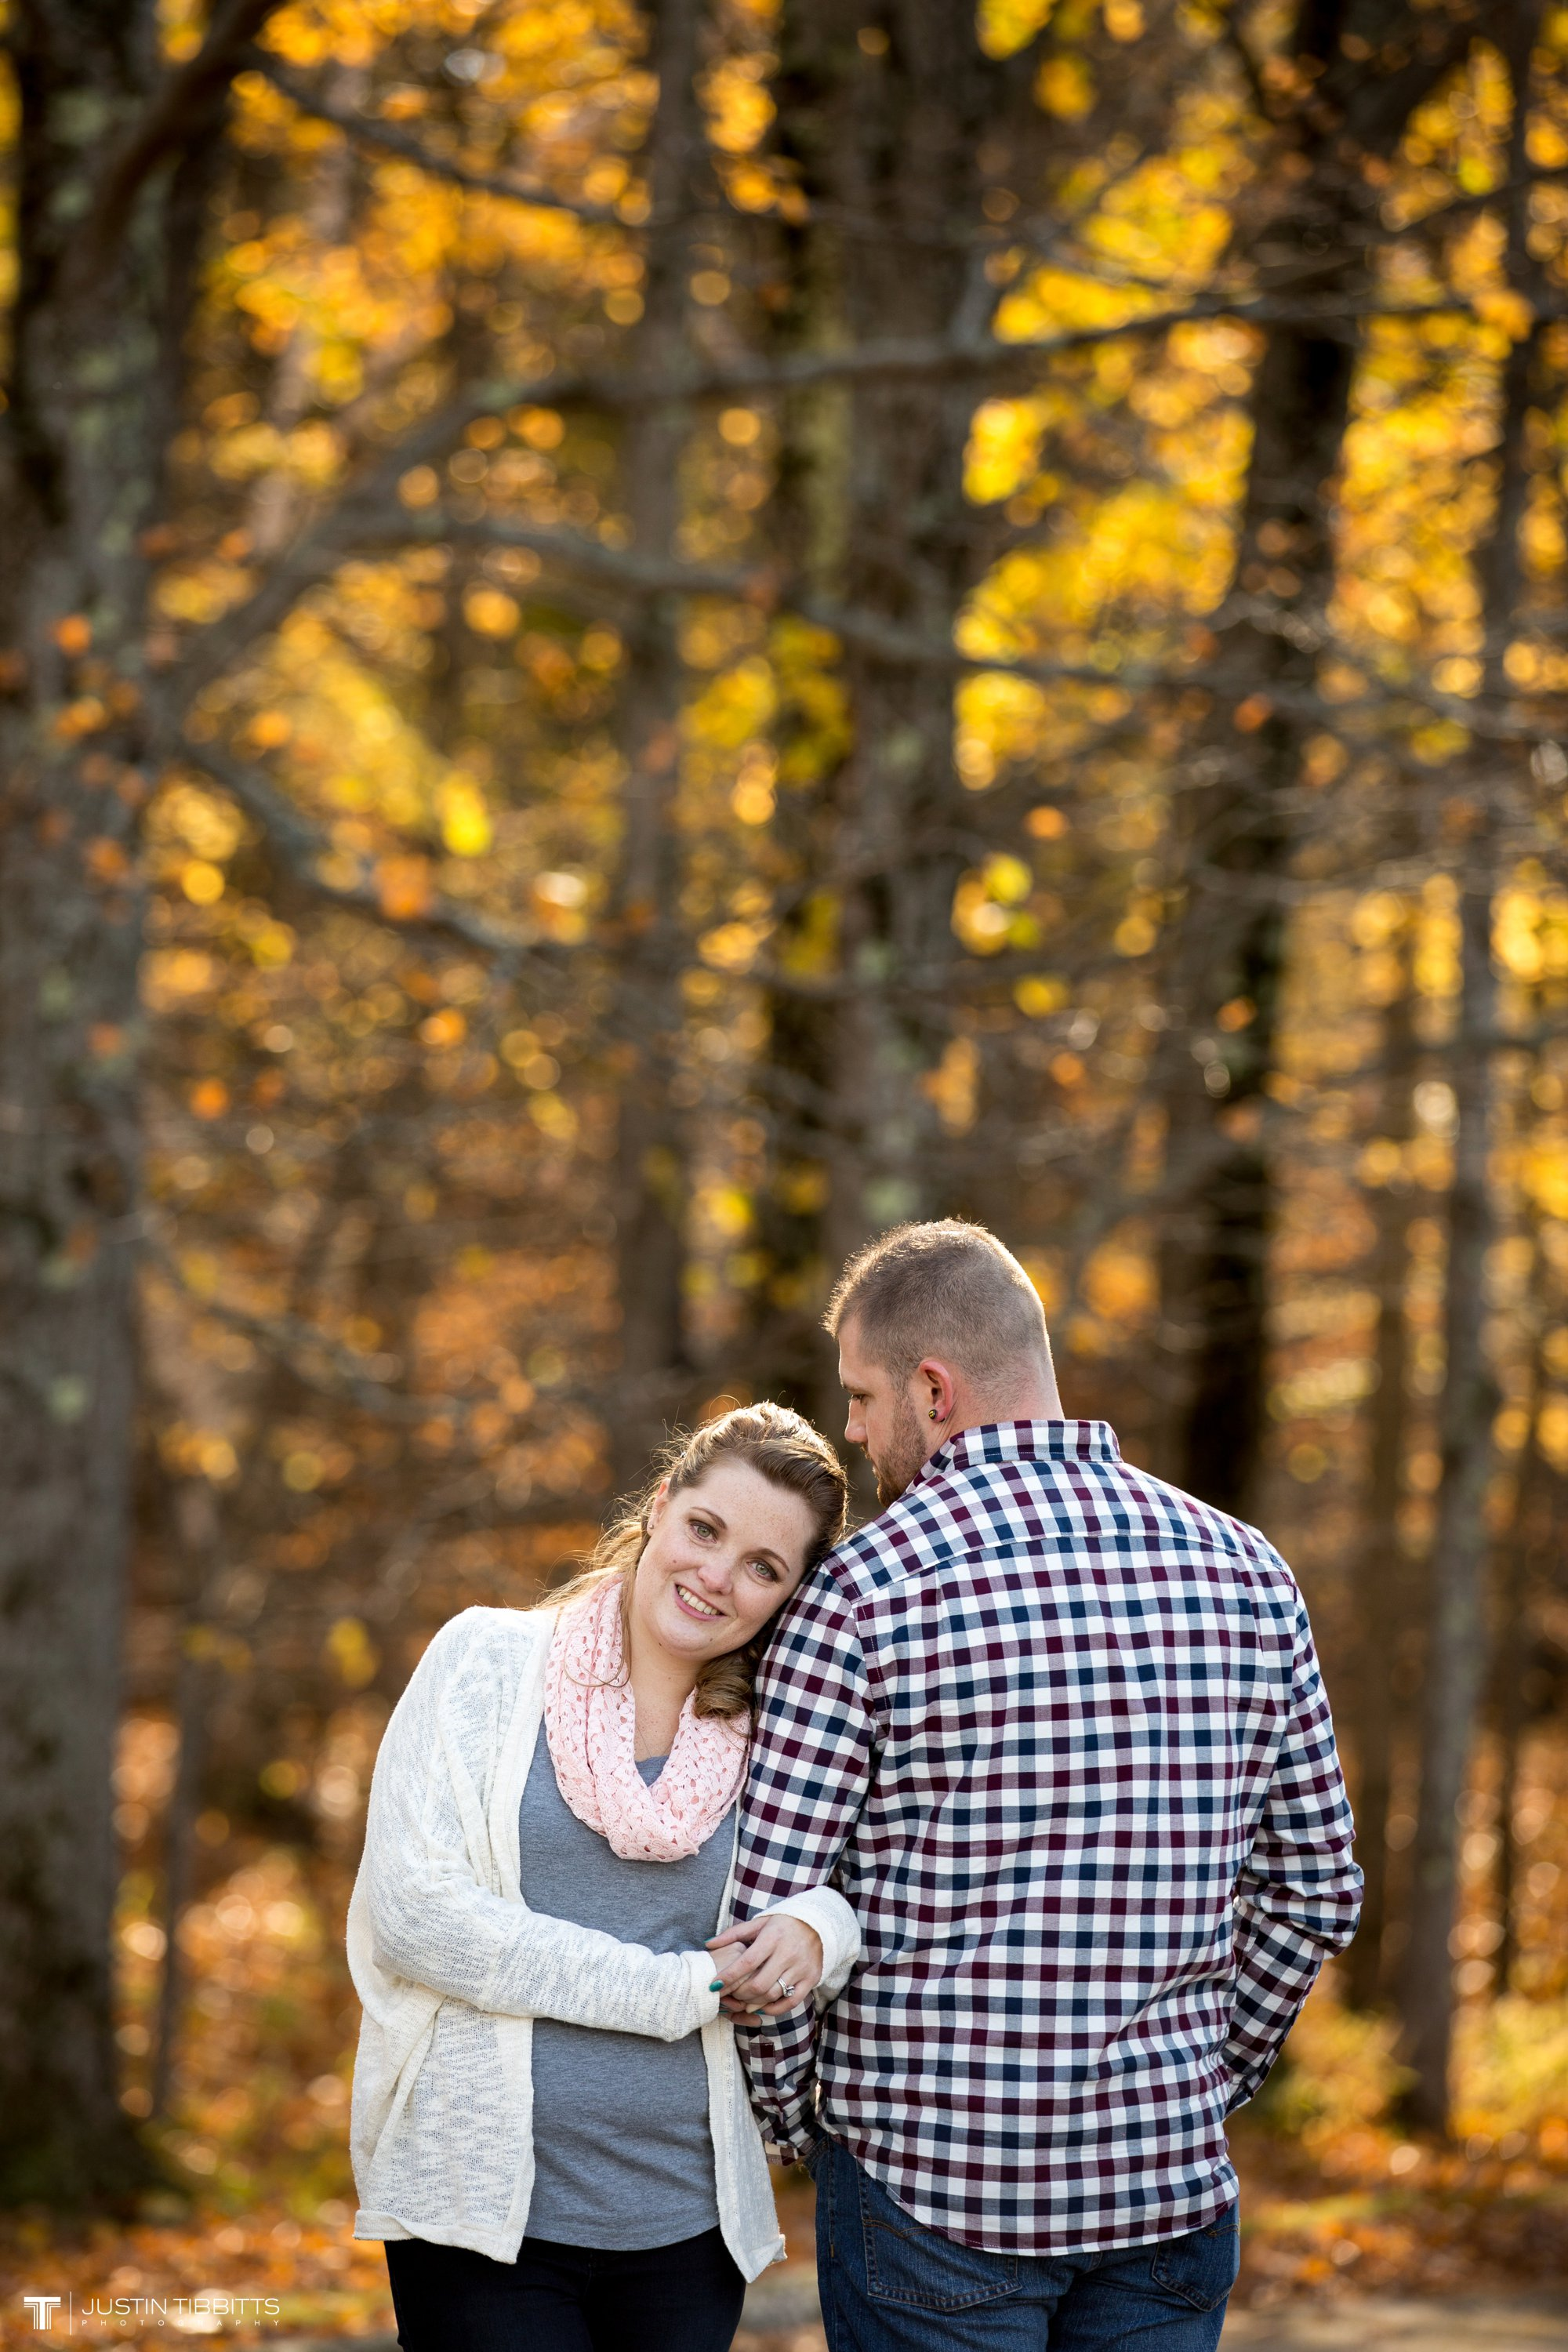 Justin Tibbitts Photography Ashlee and Steves Thatcher Park, New York Engagement Shoot-33